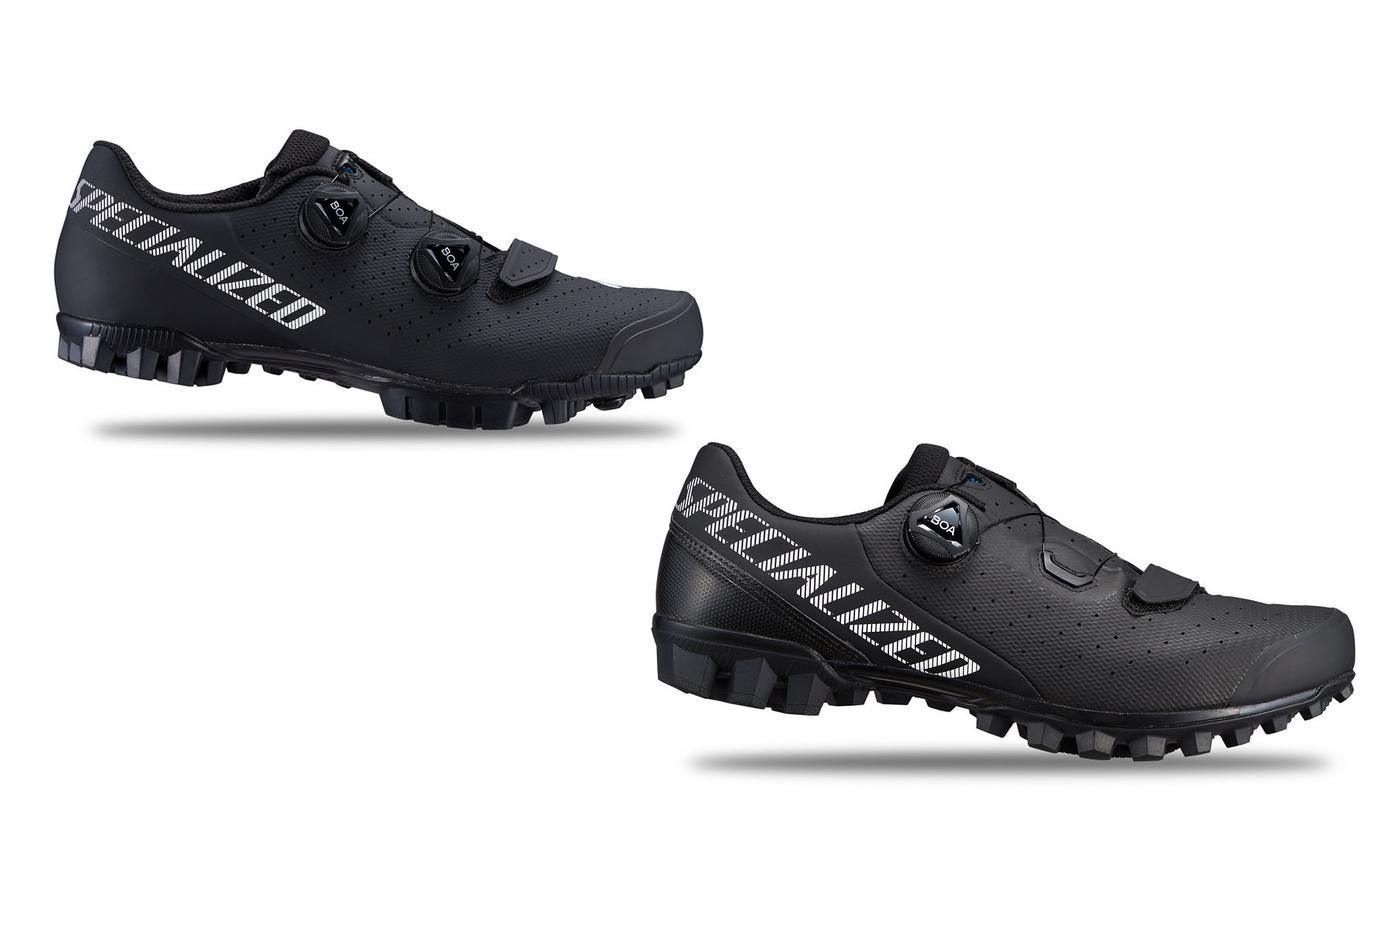 Specialized's Recon 2.0 and 3.0 MTB Shoes